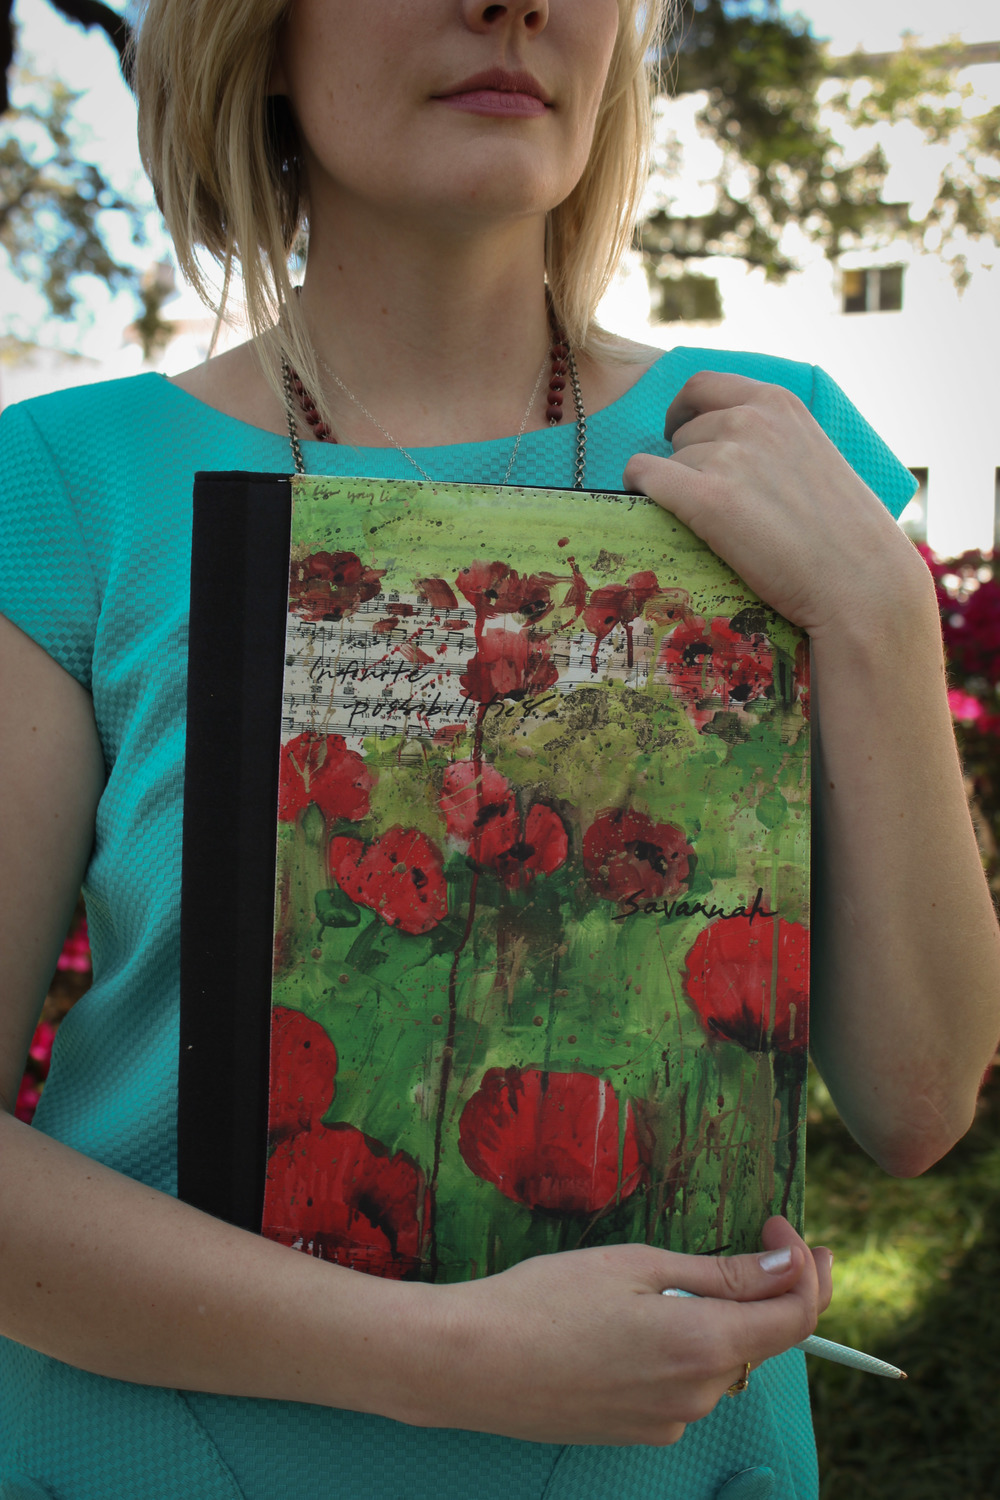 Click Image to Enlarge  -Lifestyle Collection Infinite Possibilities Notebook - Photography by Kelsey Stapleton